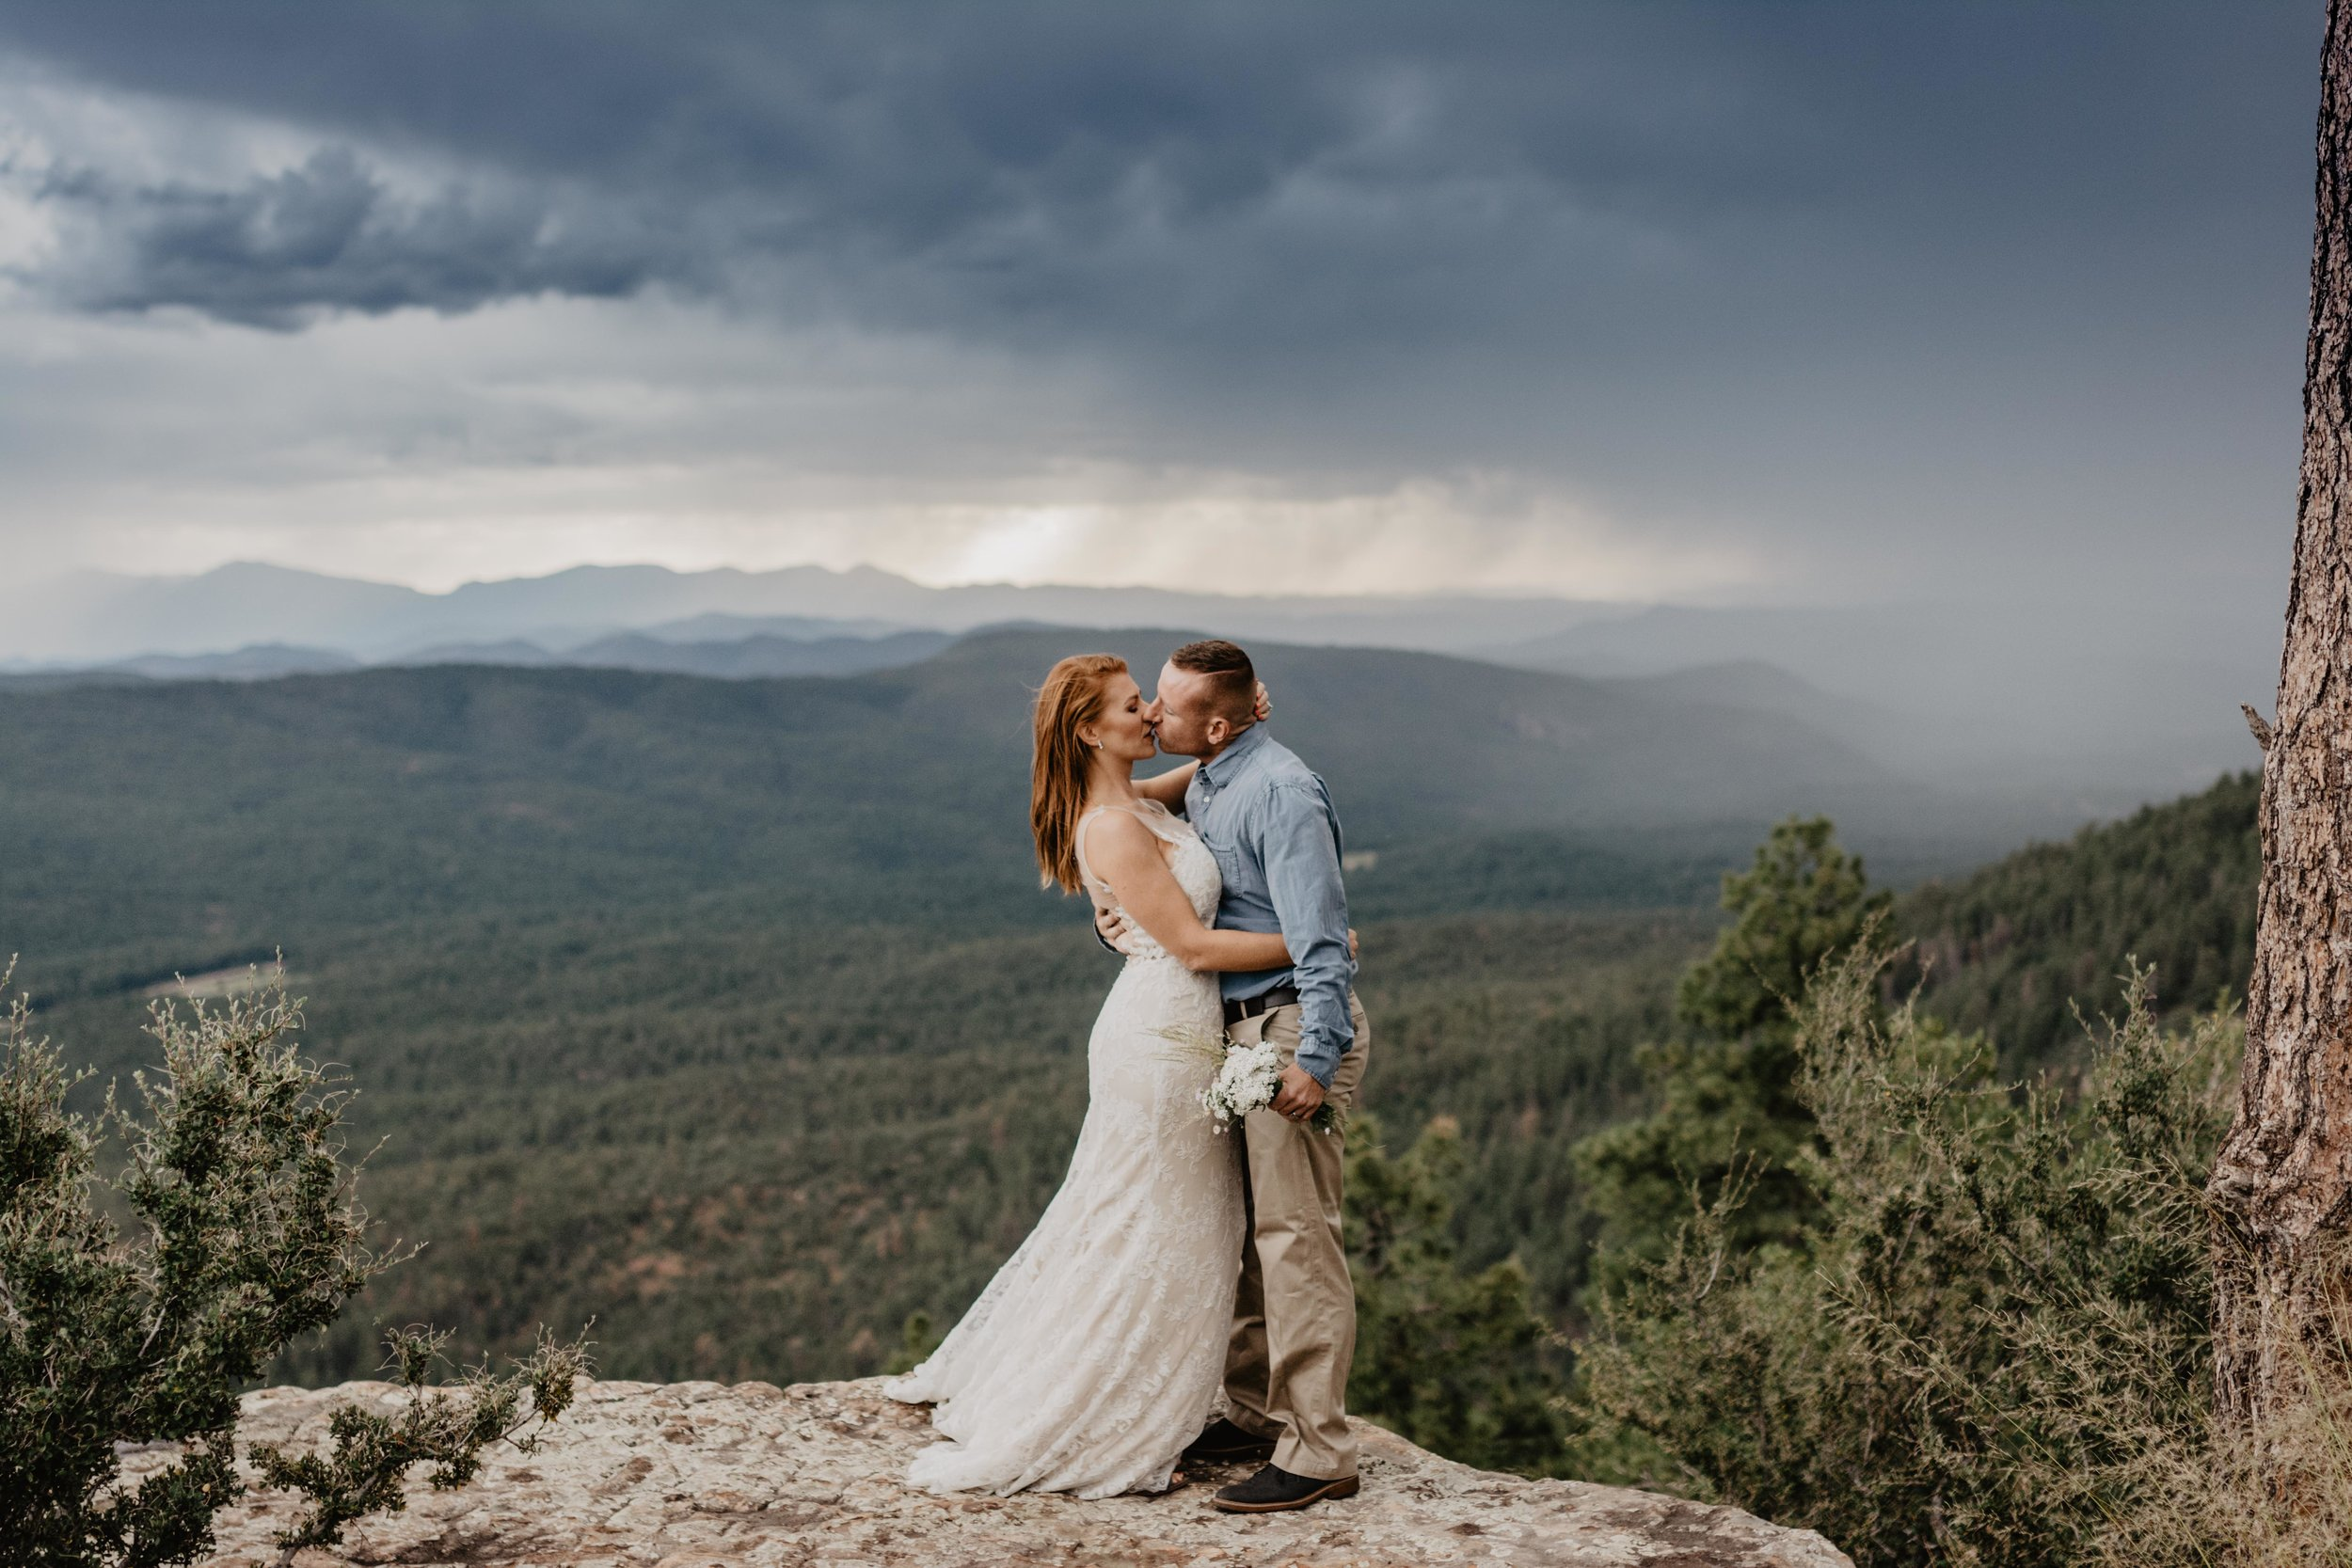 Mogollon Rim Elopement Photographer